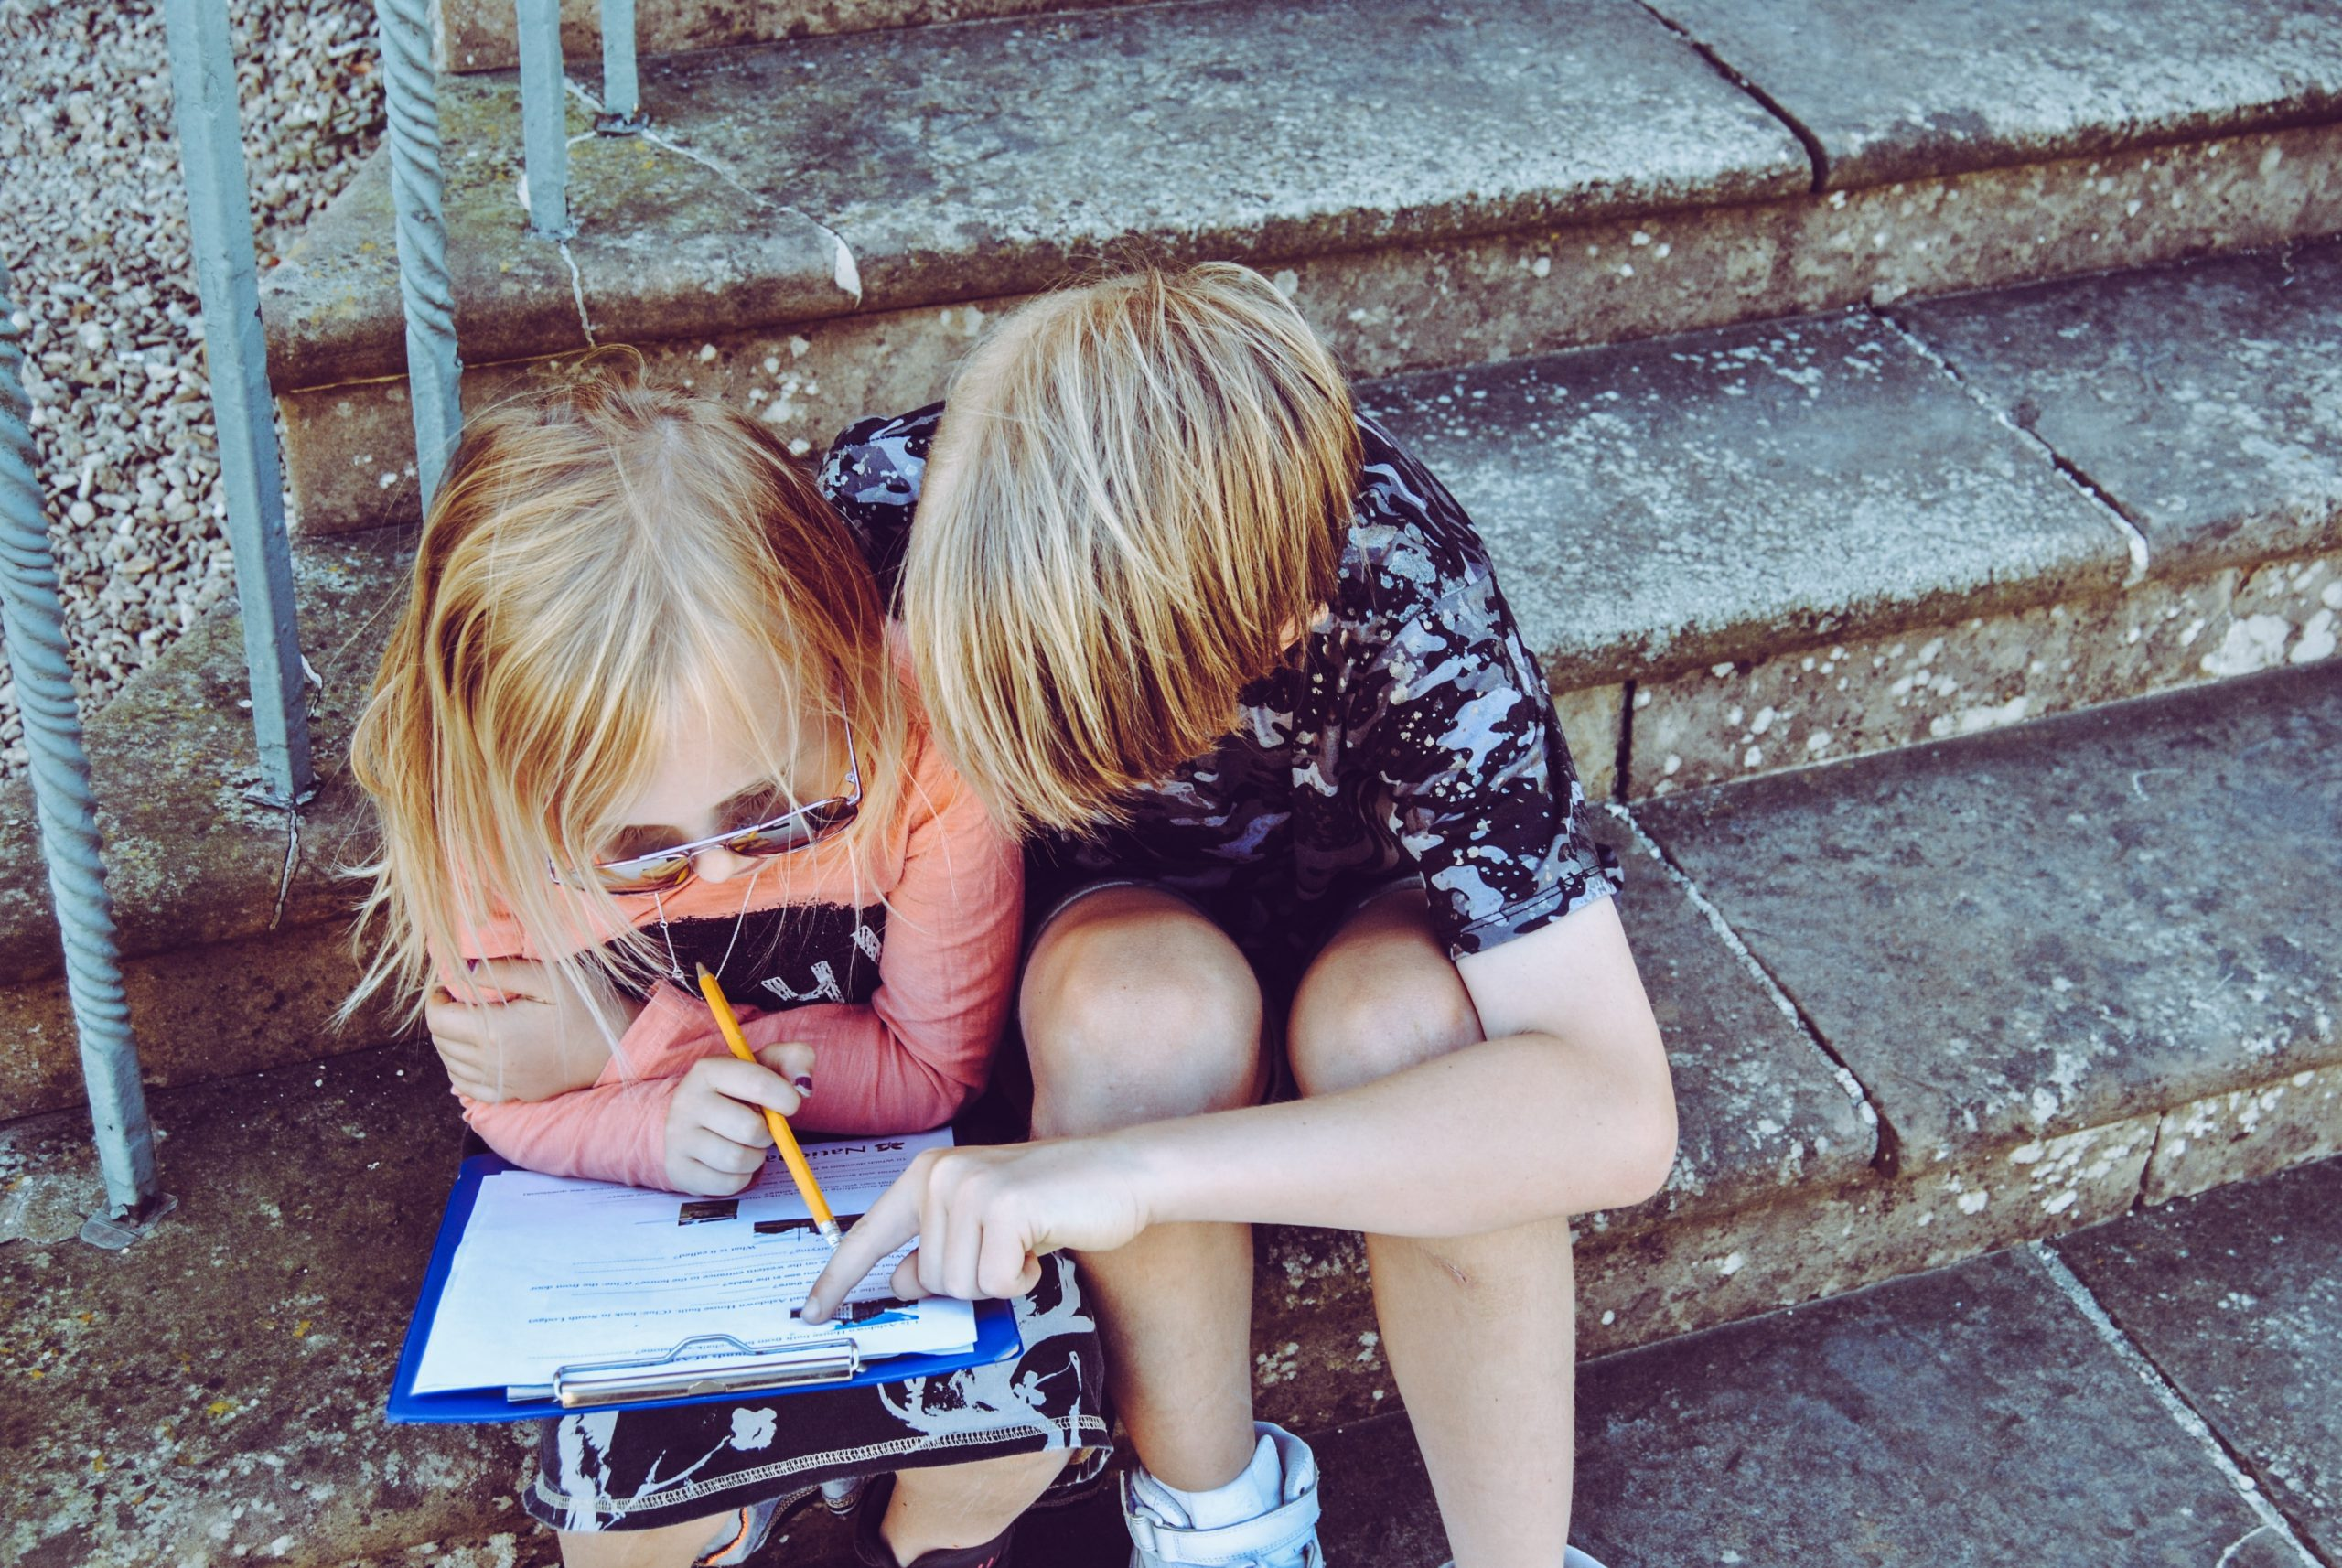 Two children sitting on cement steps examine a paper on a clipboard.